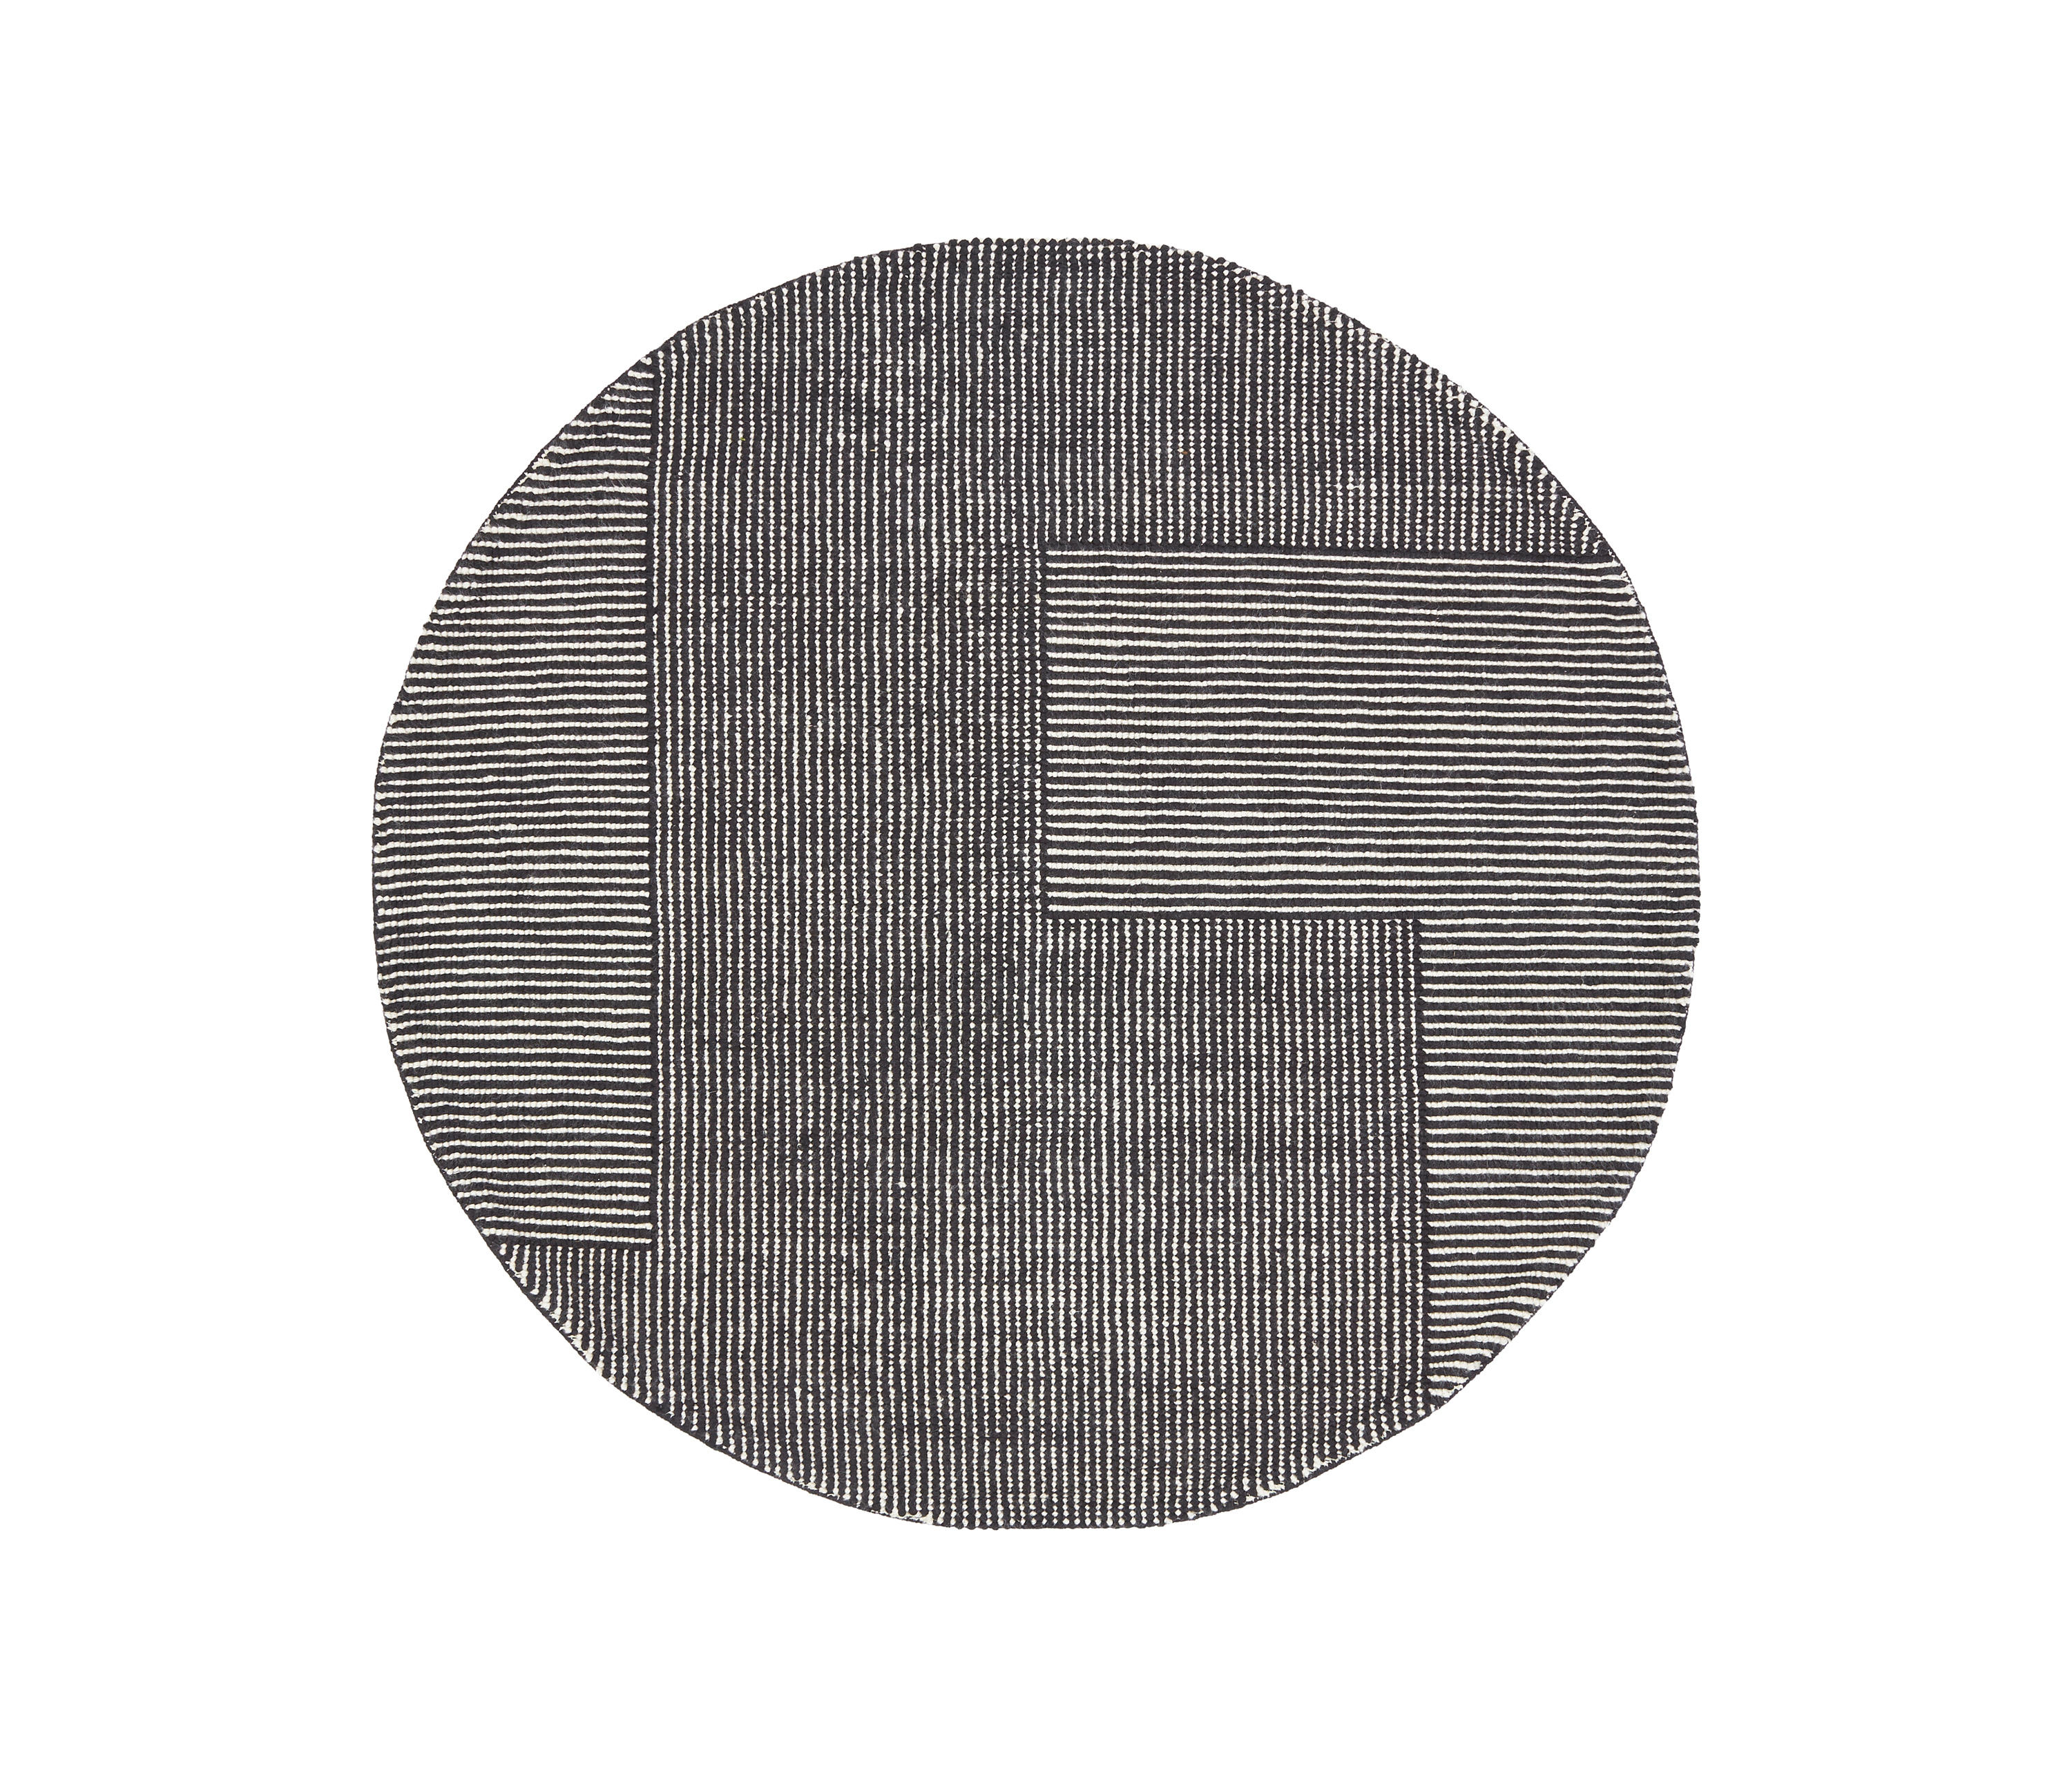 Stripe rug round black and white rugs from tom dixon - Black and white rug ...